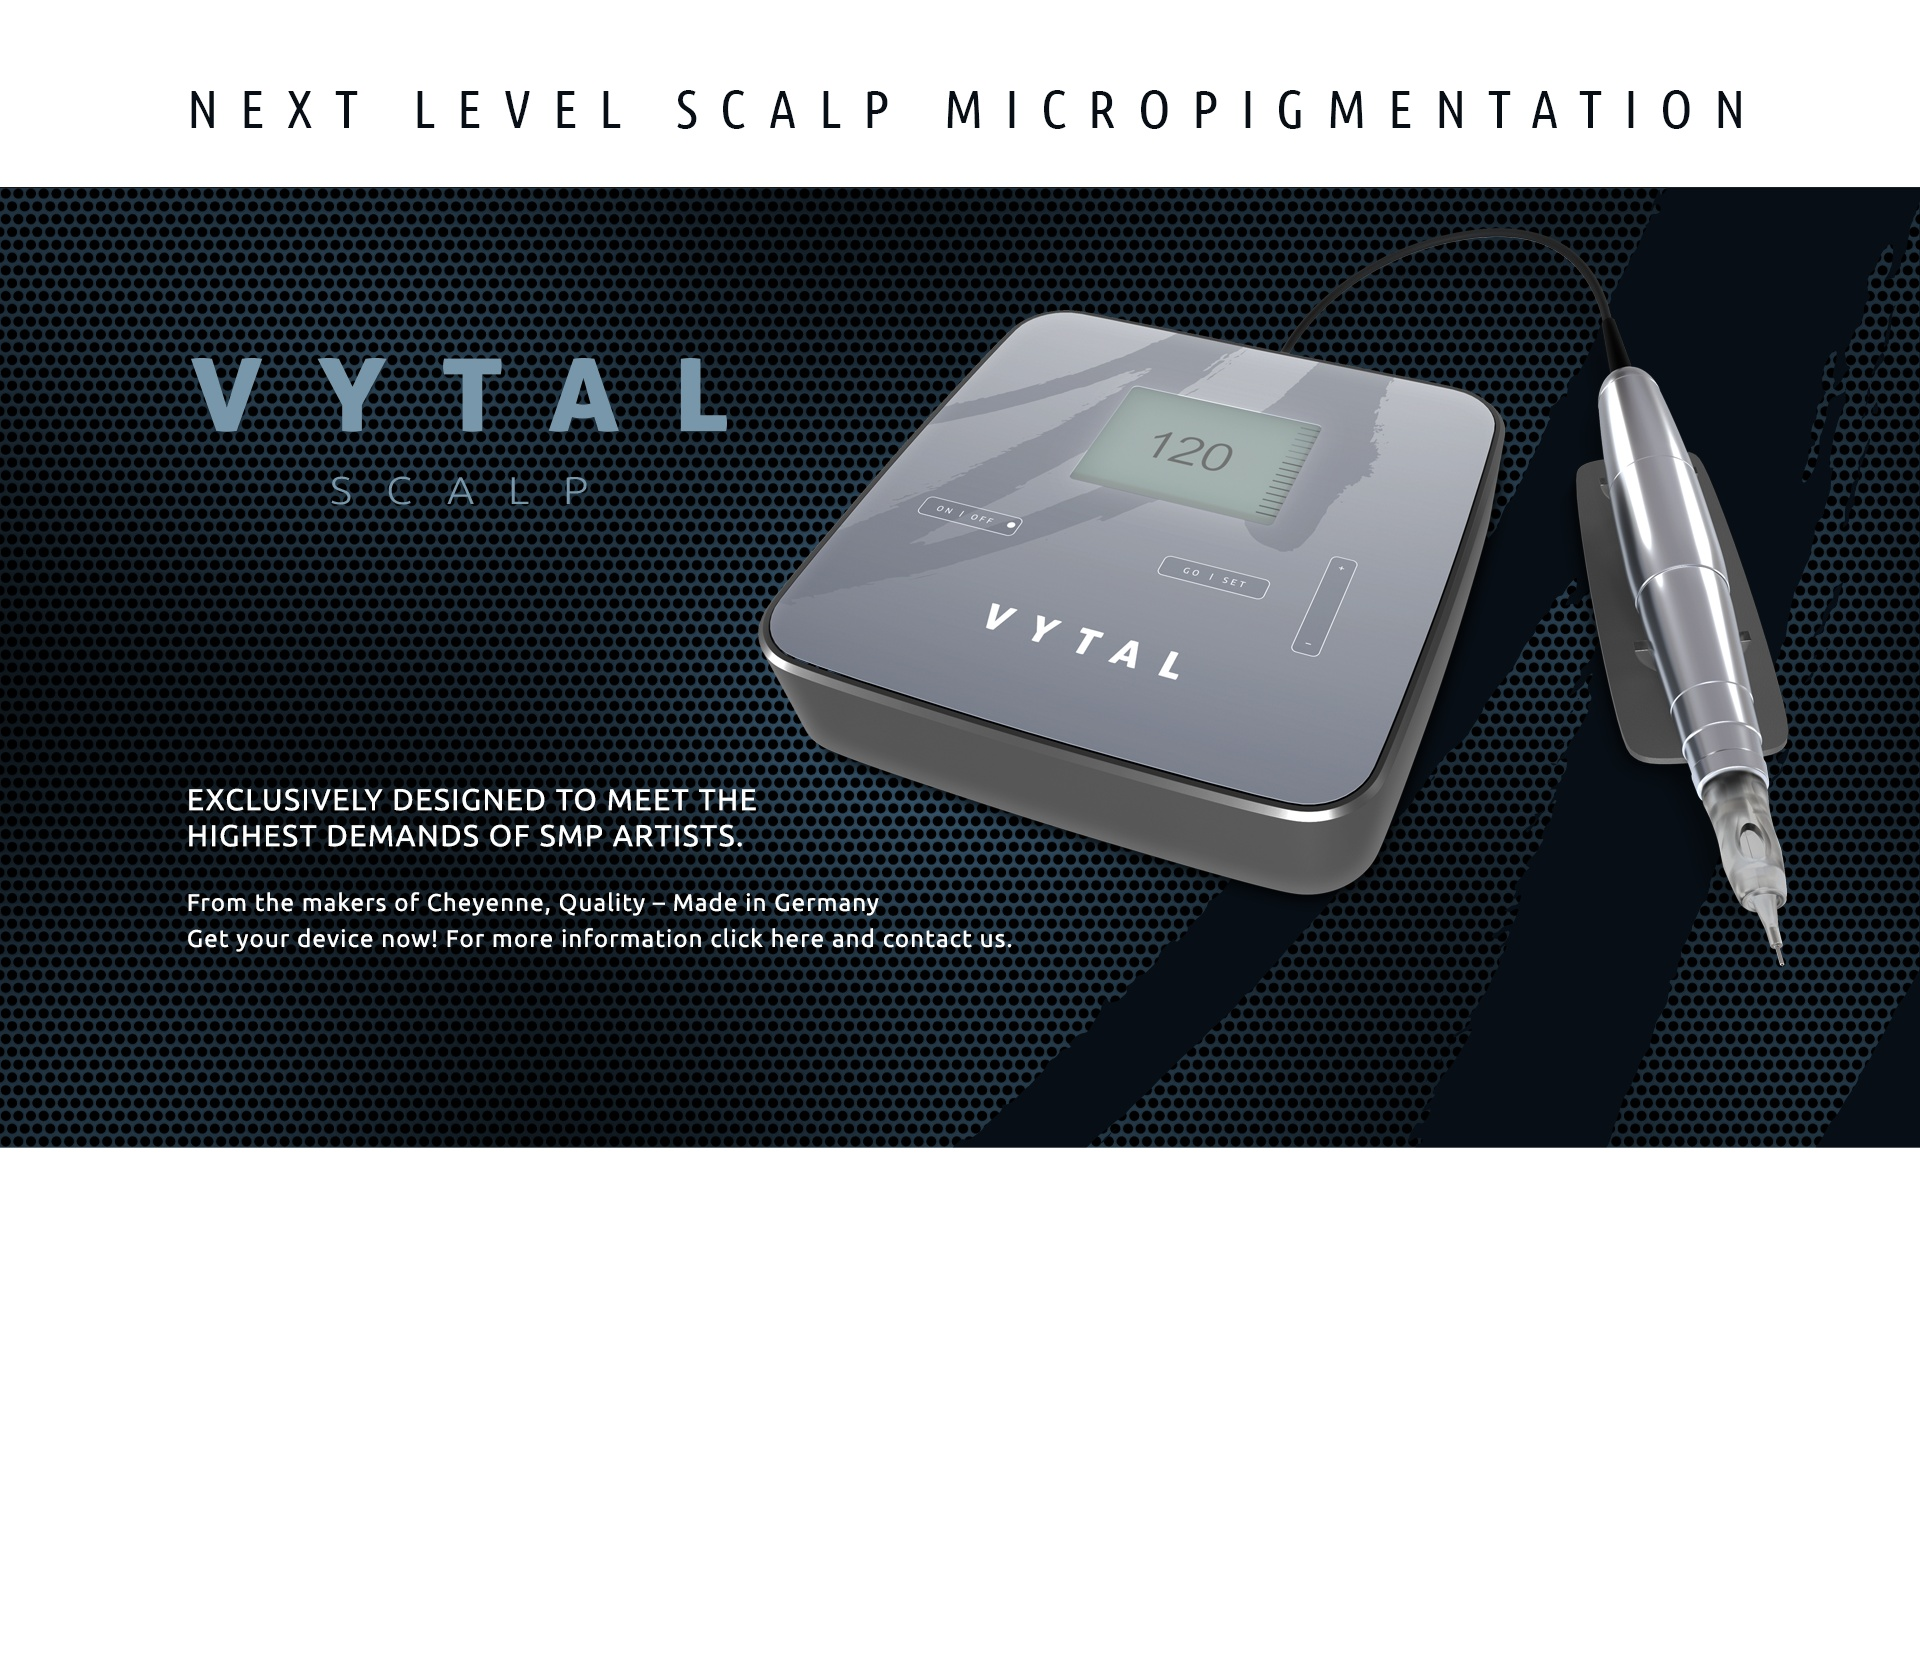 VYTAL Scalp - Next level scalp micropigmentation. Exclusively designed to meet the highest demands of SMP artists. From the makers of Cheyenne, Quality - Made in Germany. Get your device now!